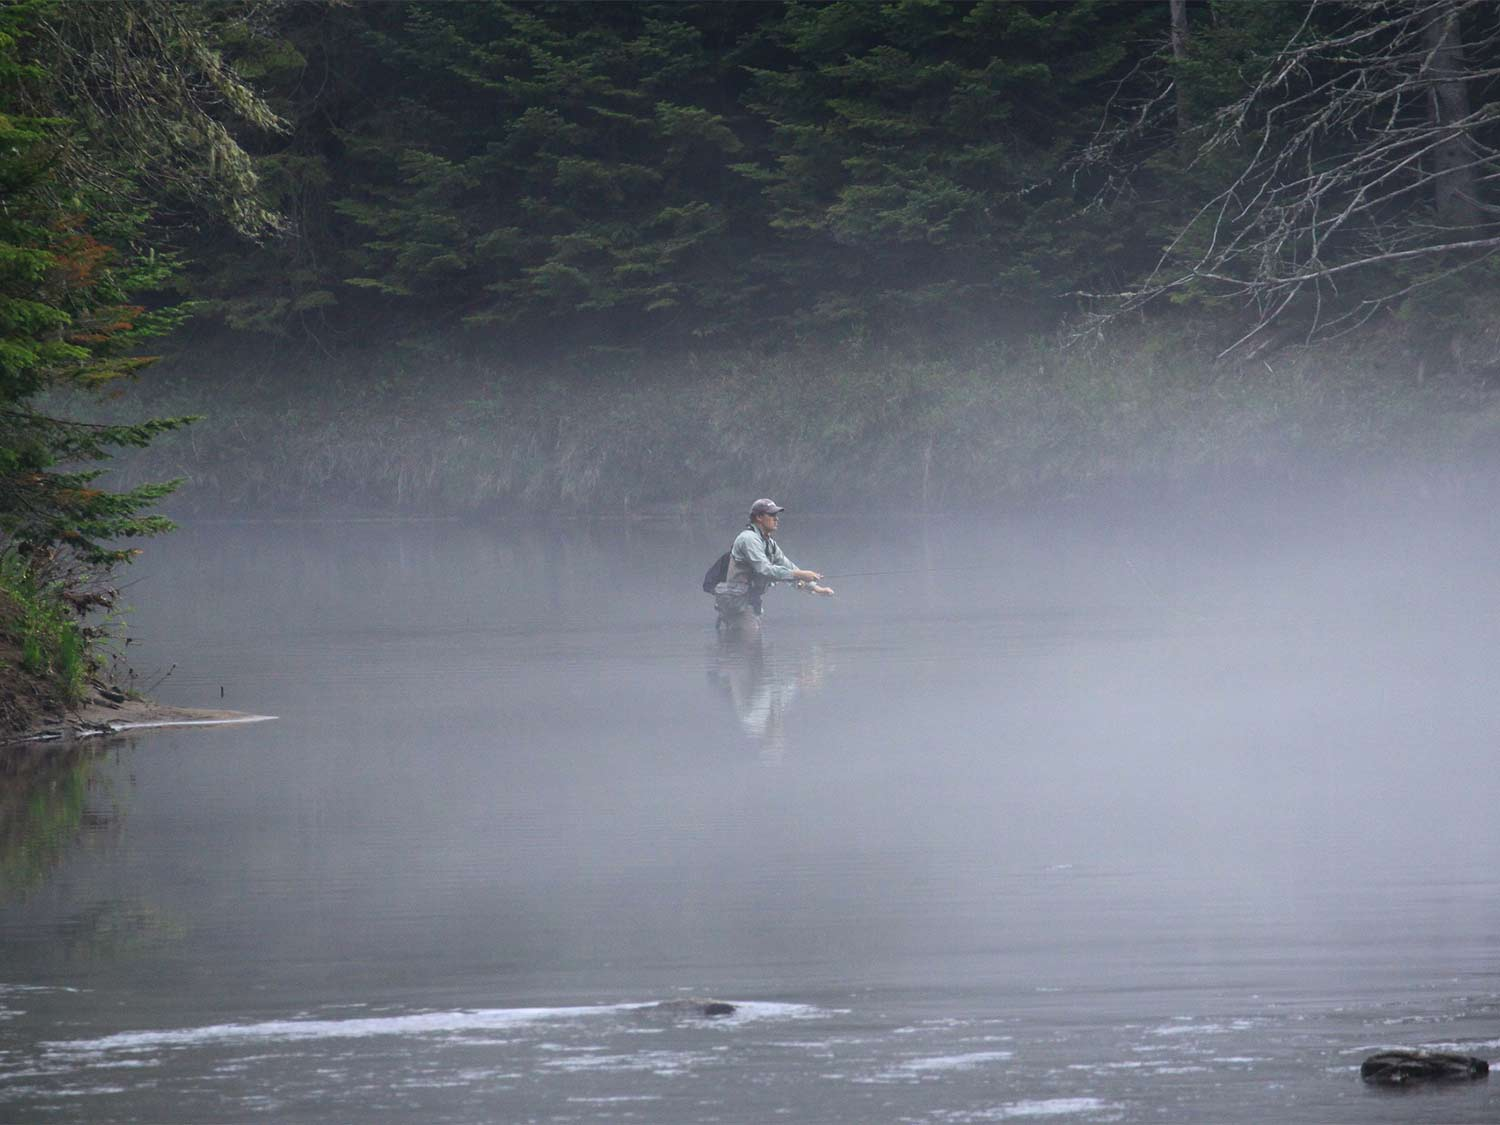 A fly angler wading through a river and fishing in the fog.